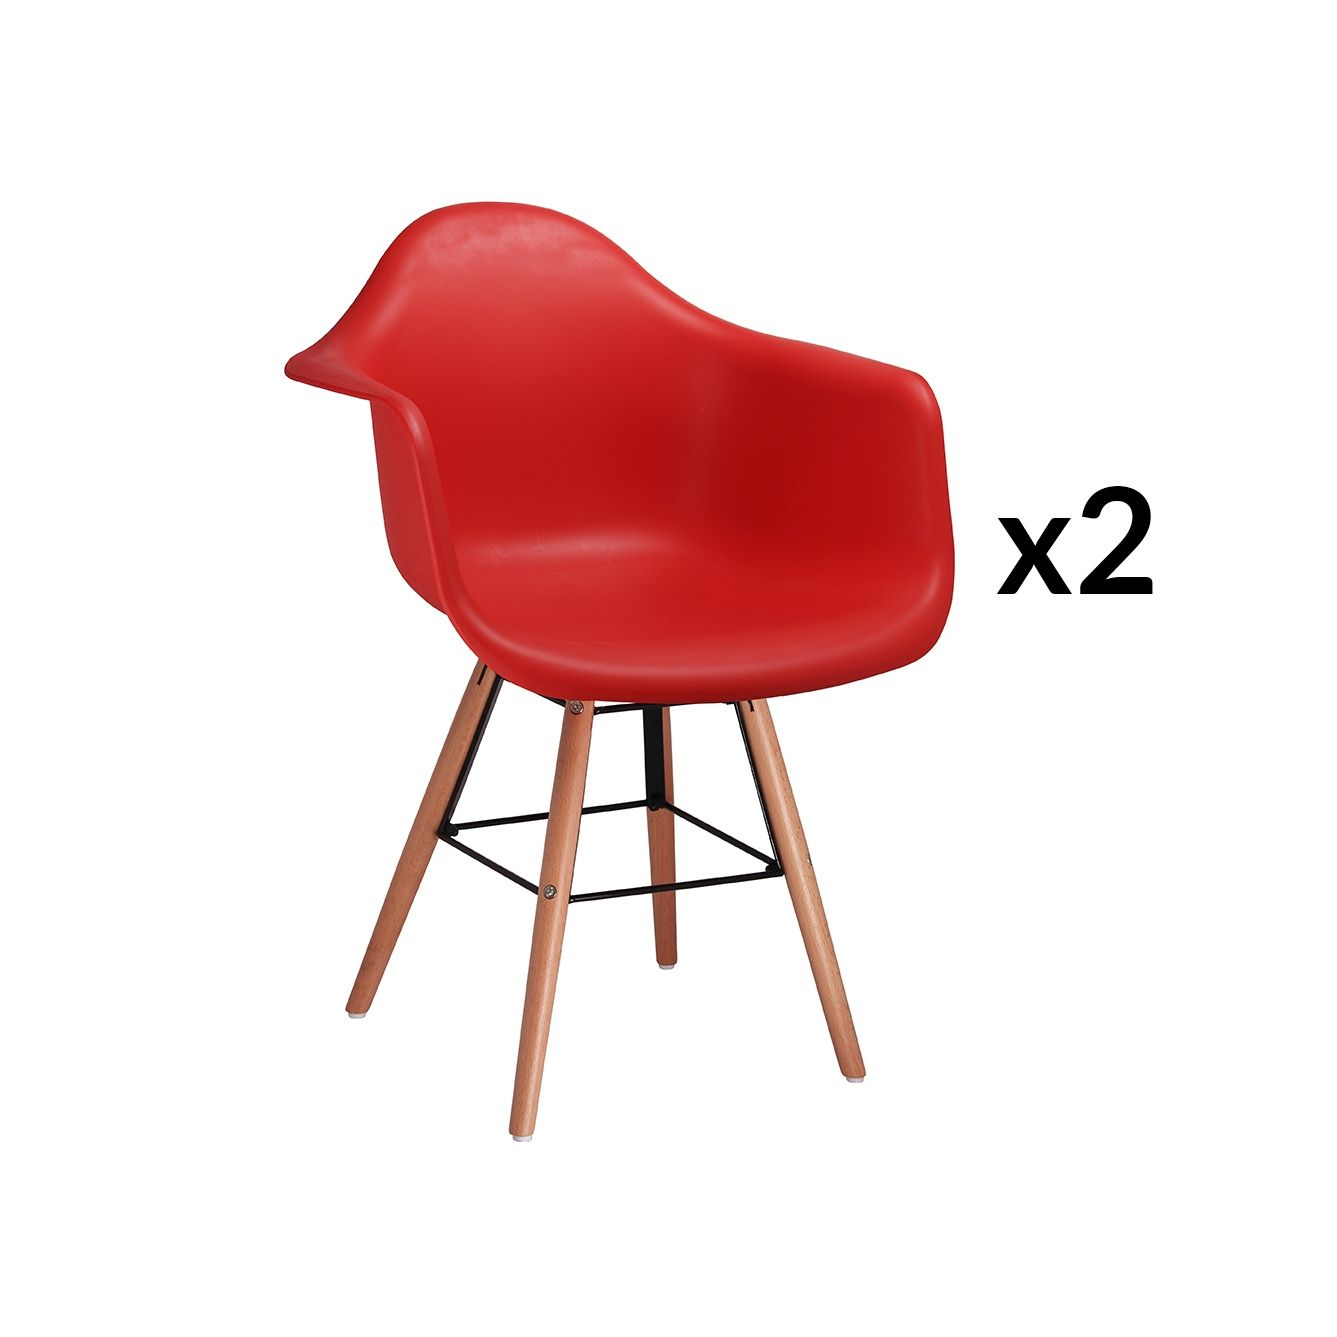 Chaises Rouges Chaises Rouges Simple Chaise Rouge Et Blanche Brema With